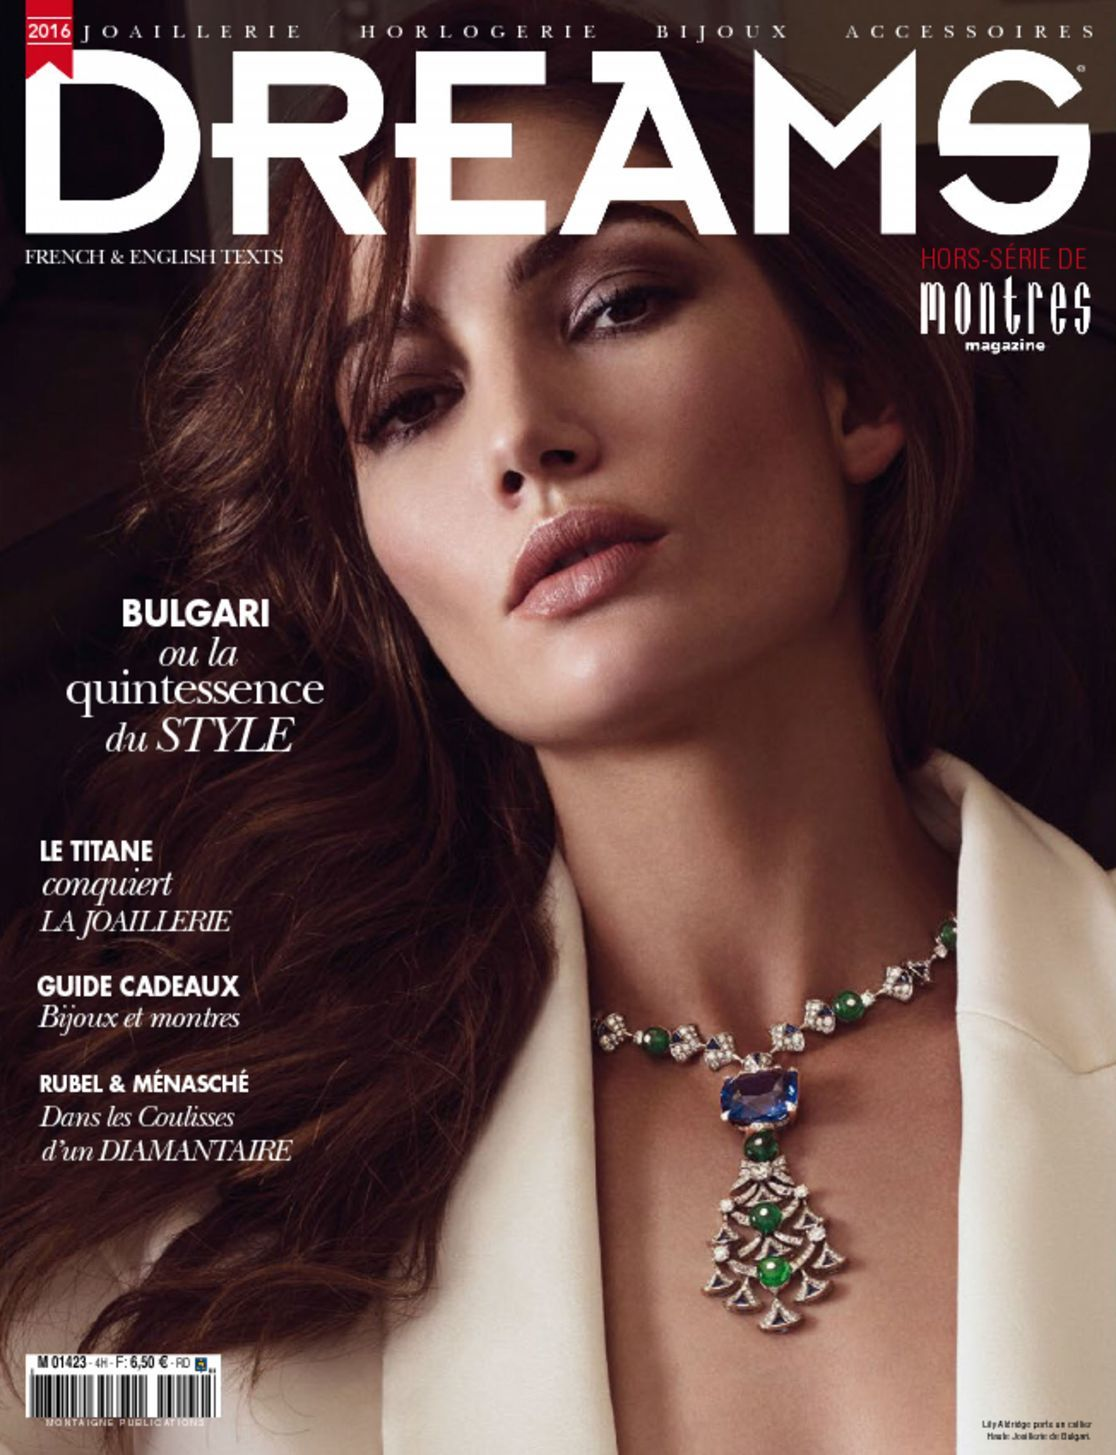 Magazine dreams joaillerie